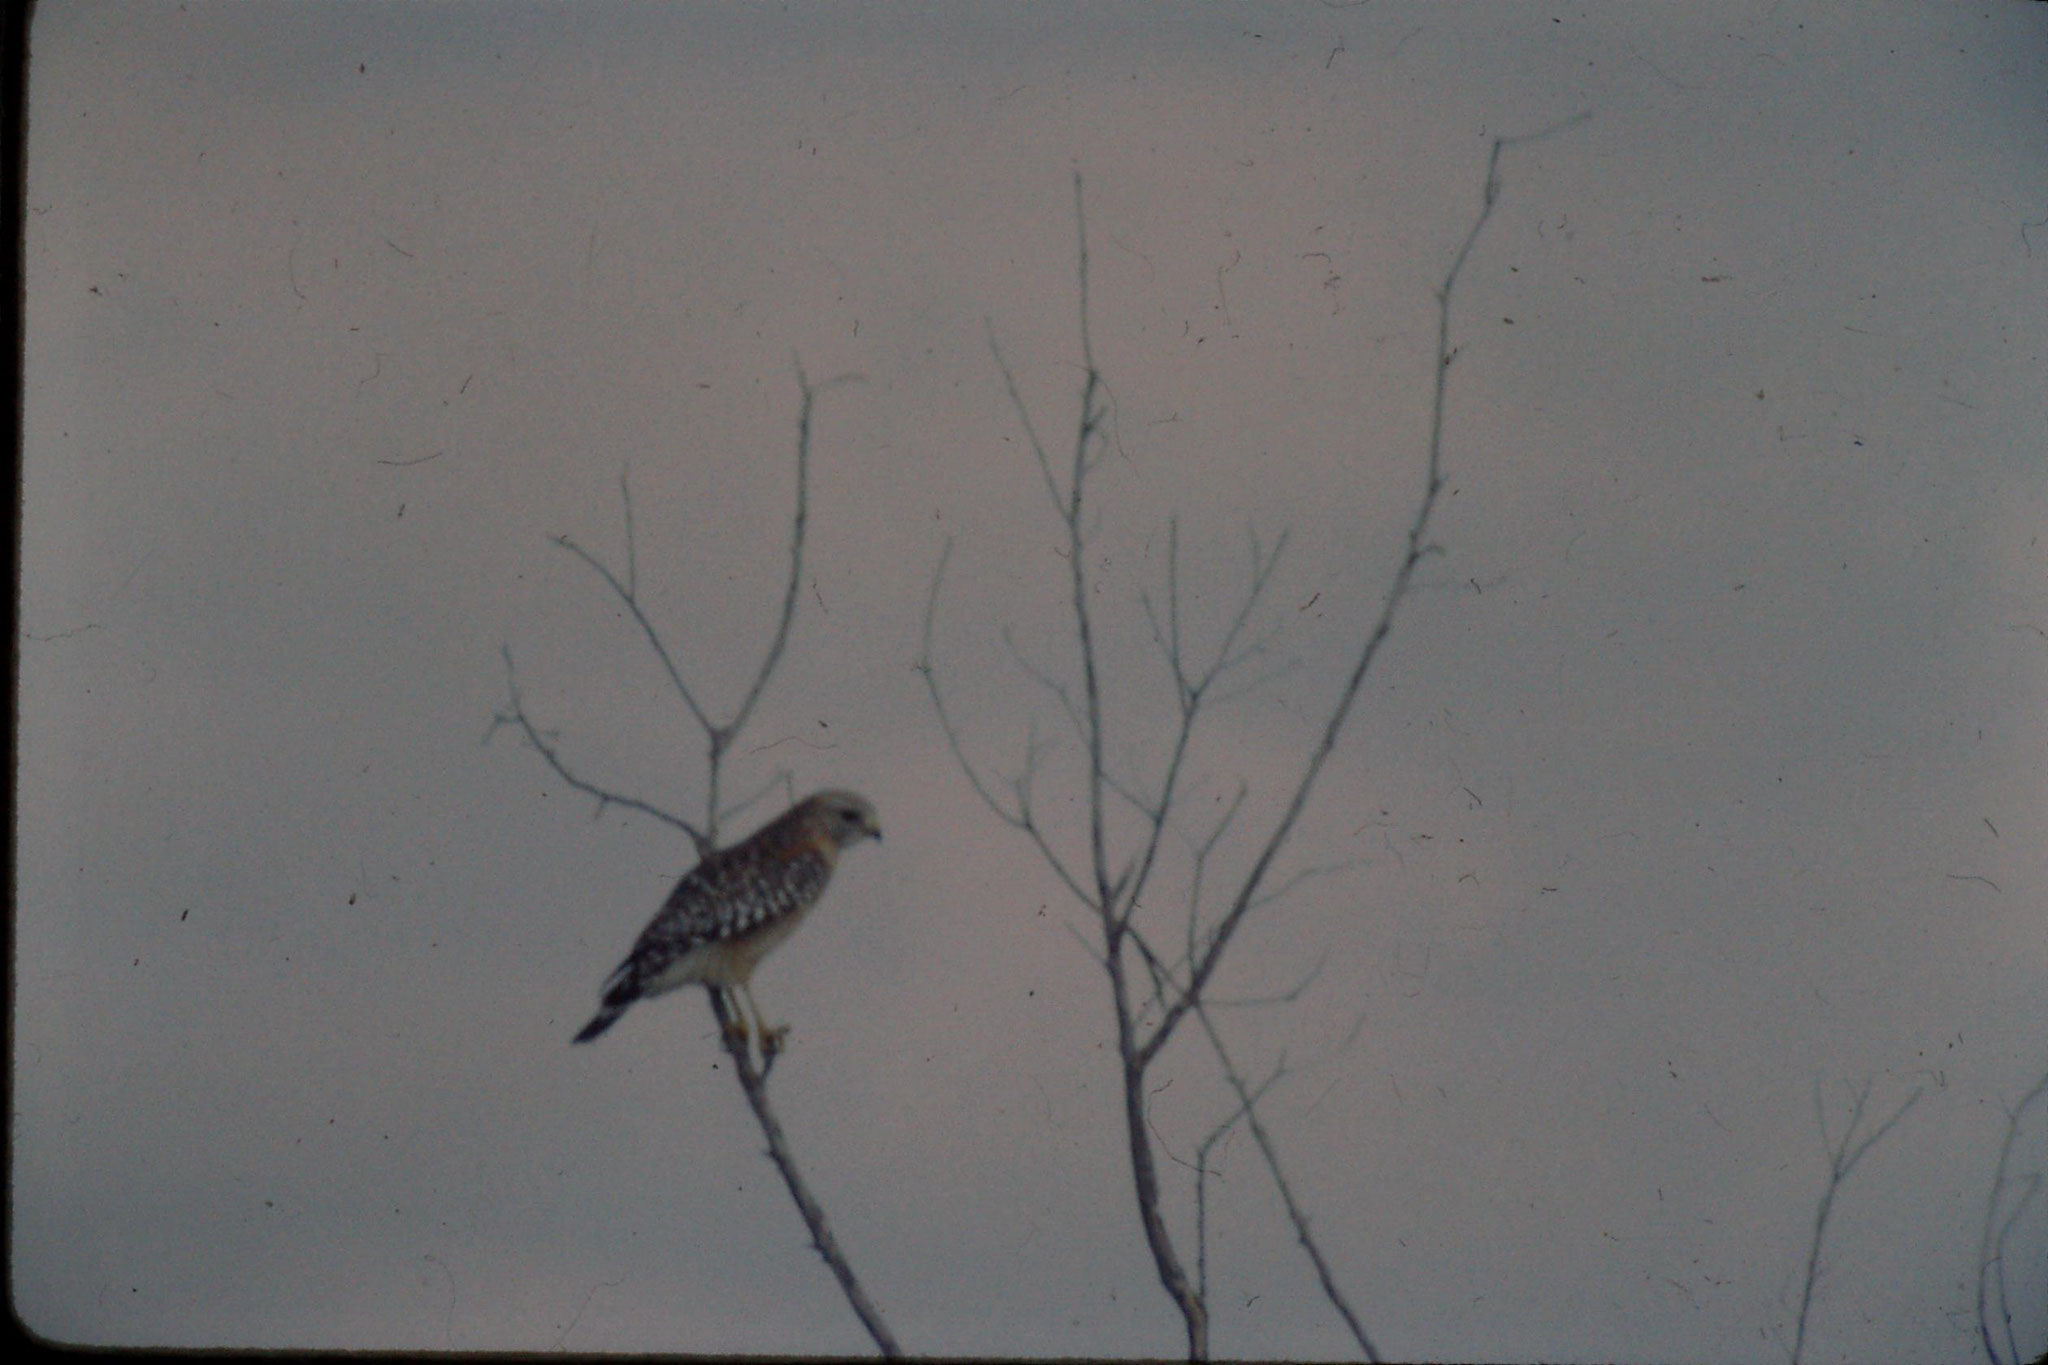 21/12/1990: 10: Everglades, red shouldered hawk